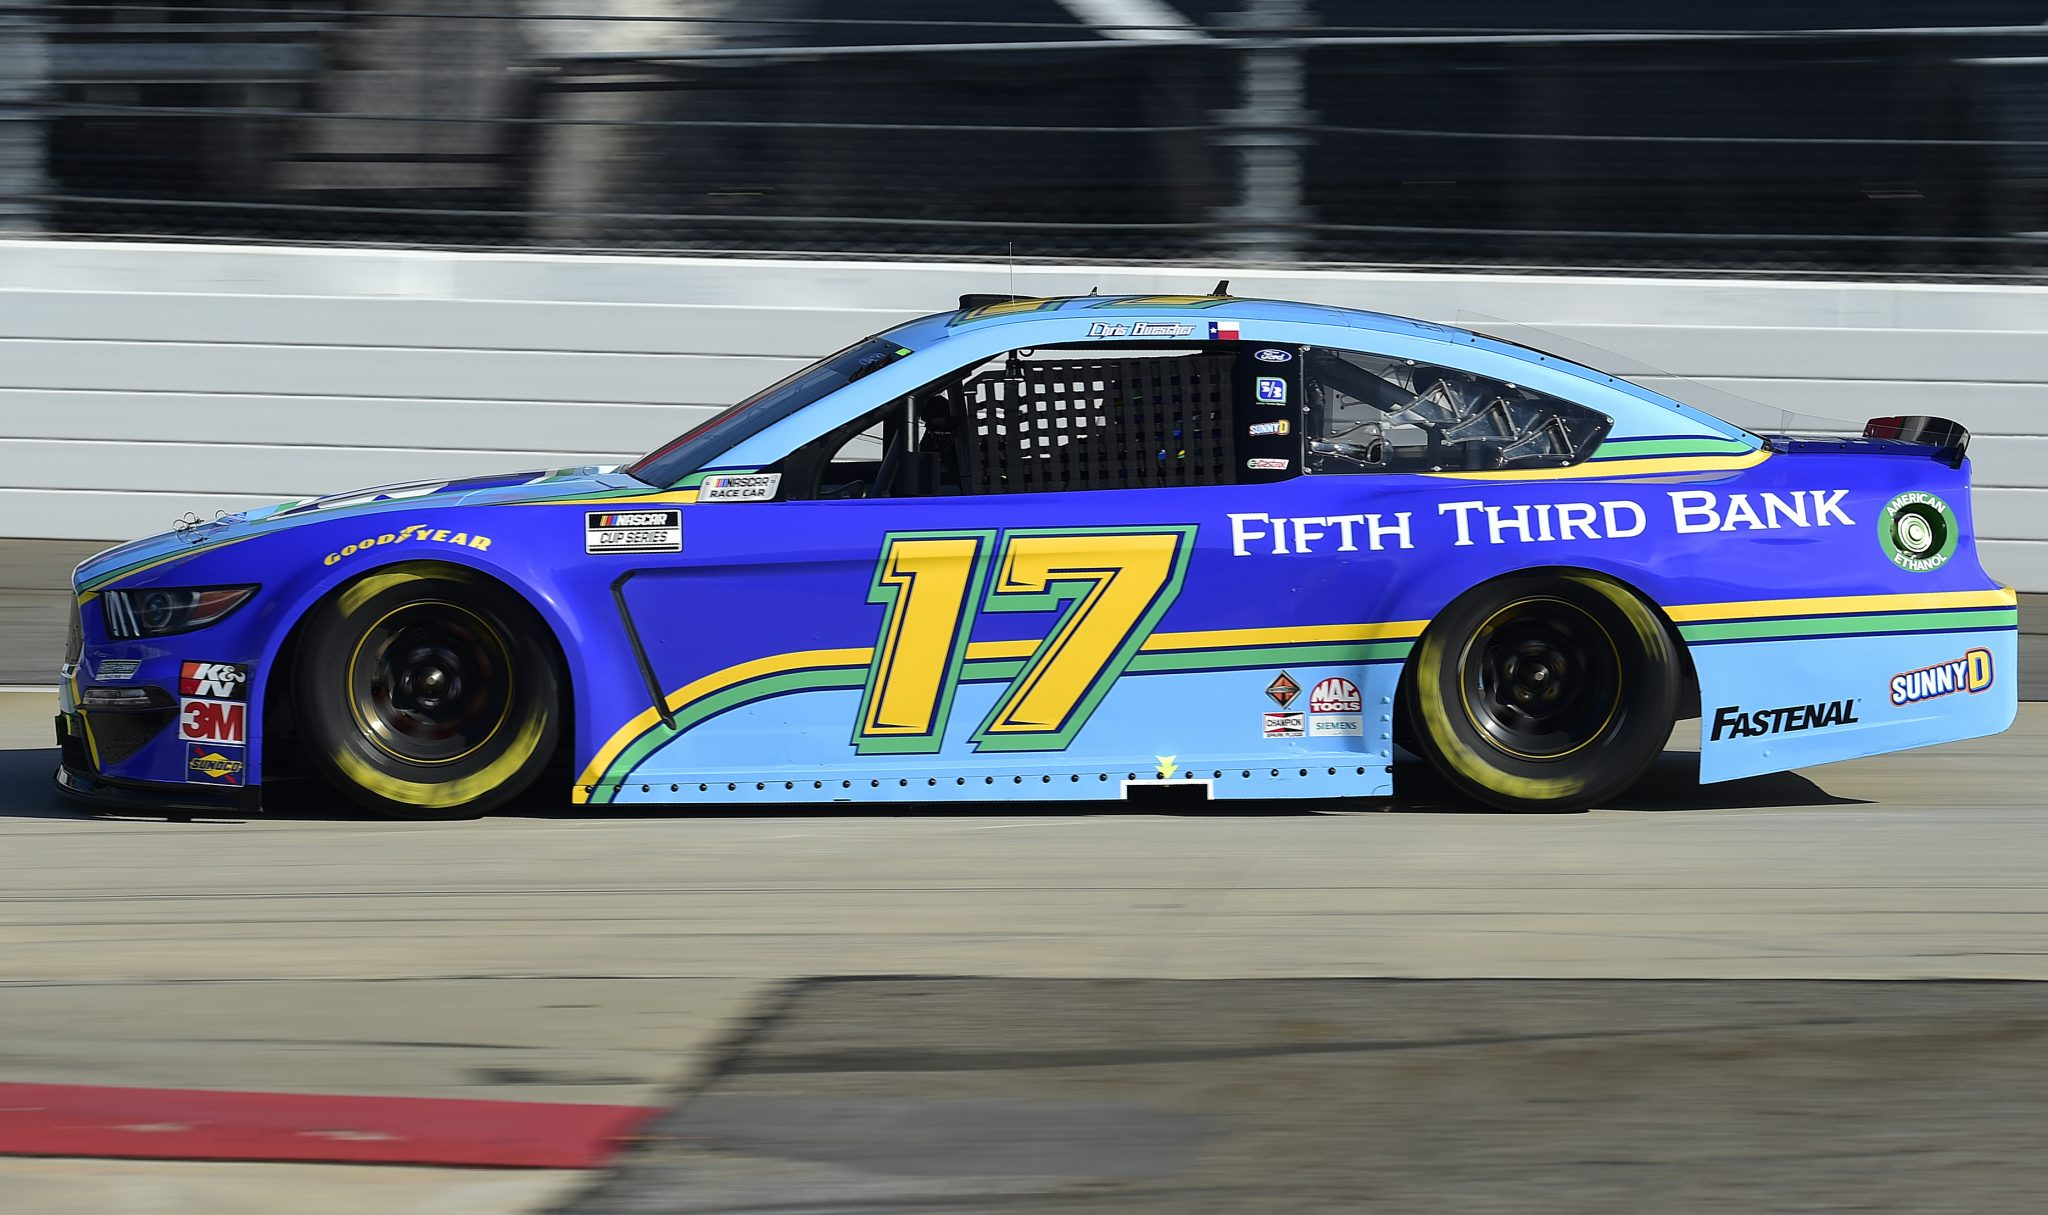 MARTINSVILLE, VIRGINIA - NOVEMBER 01: Chris Buescher, driver of the #17 Fifth Third Bank Ford, drives during the NASCAR Cup Series Xfinity 500 at Martinsville Speedway on November 01, 2020 in Martinsville, Virginia. (Photo by Jared C. Tilton/Getty Images) | Getty Images